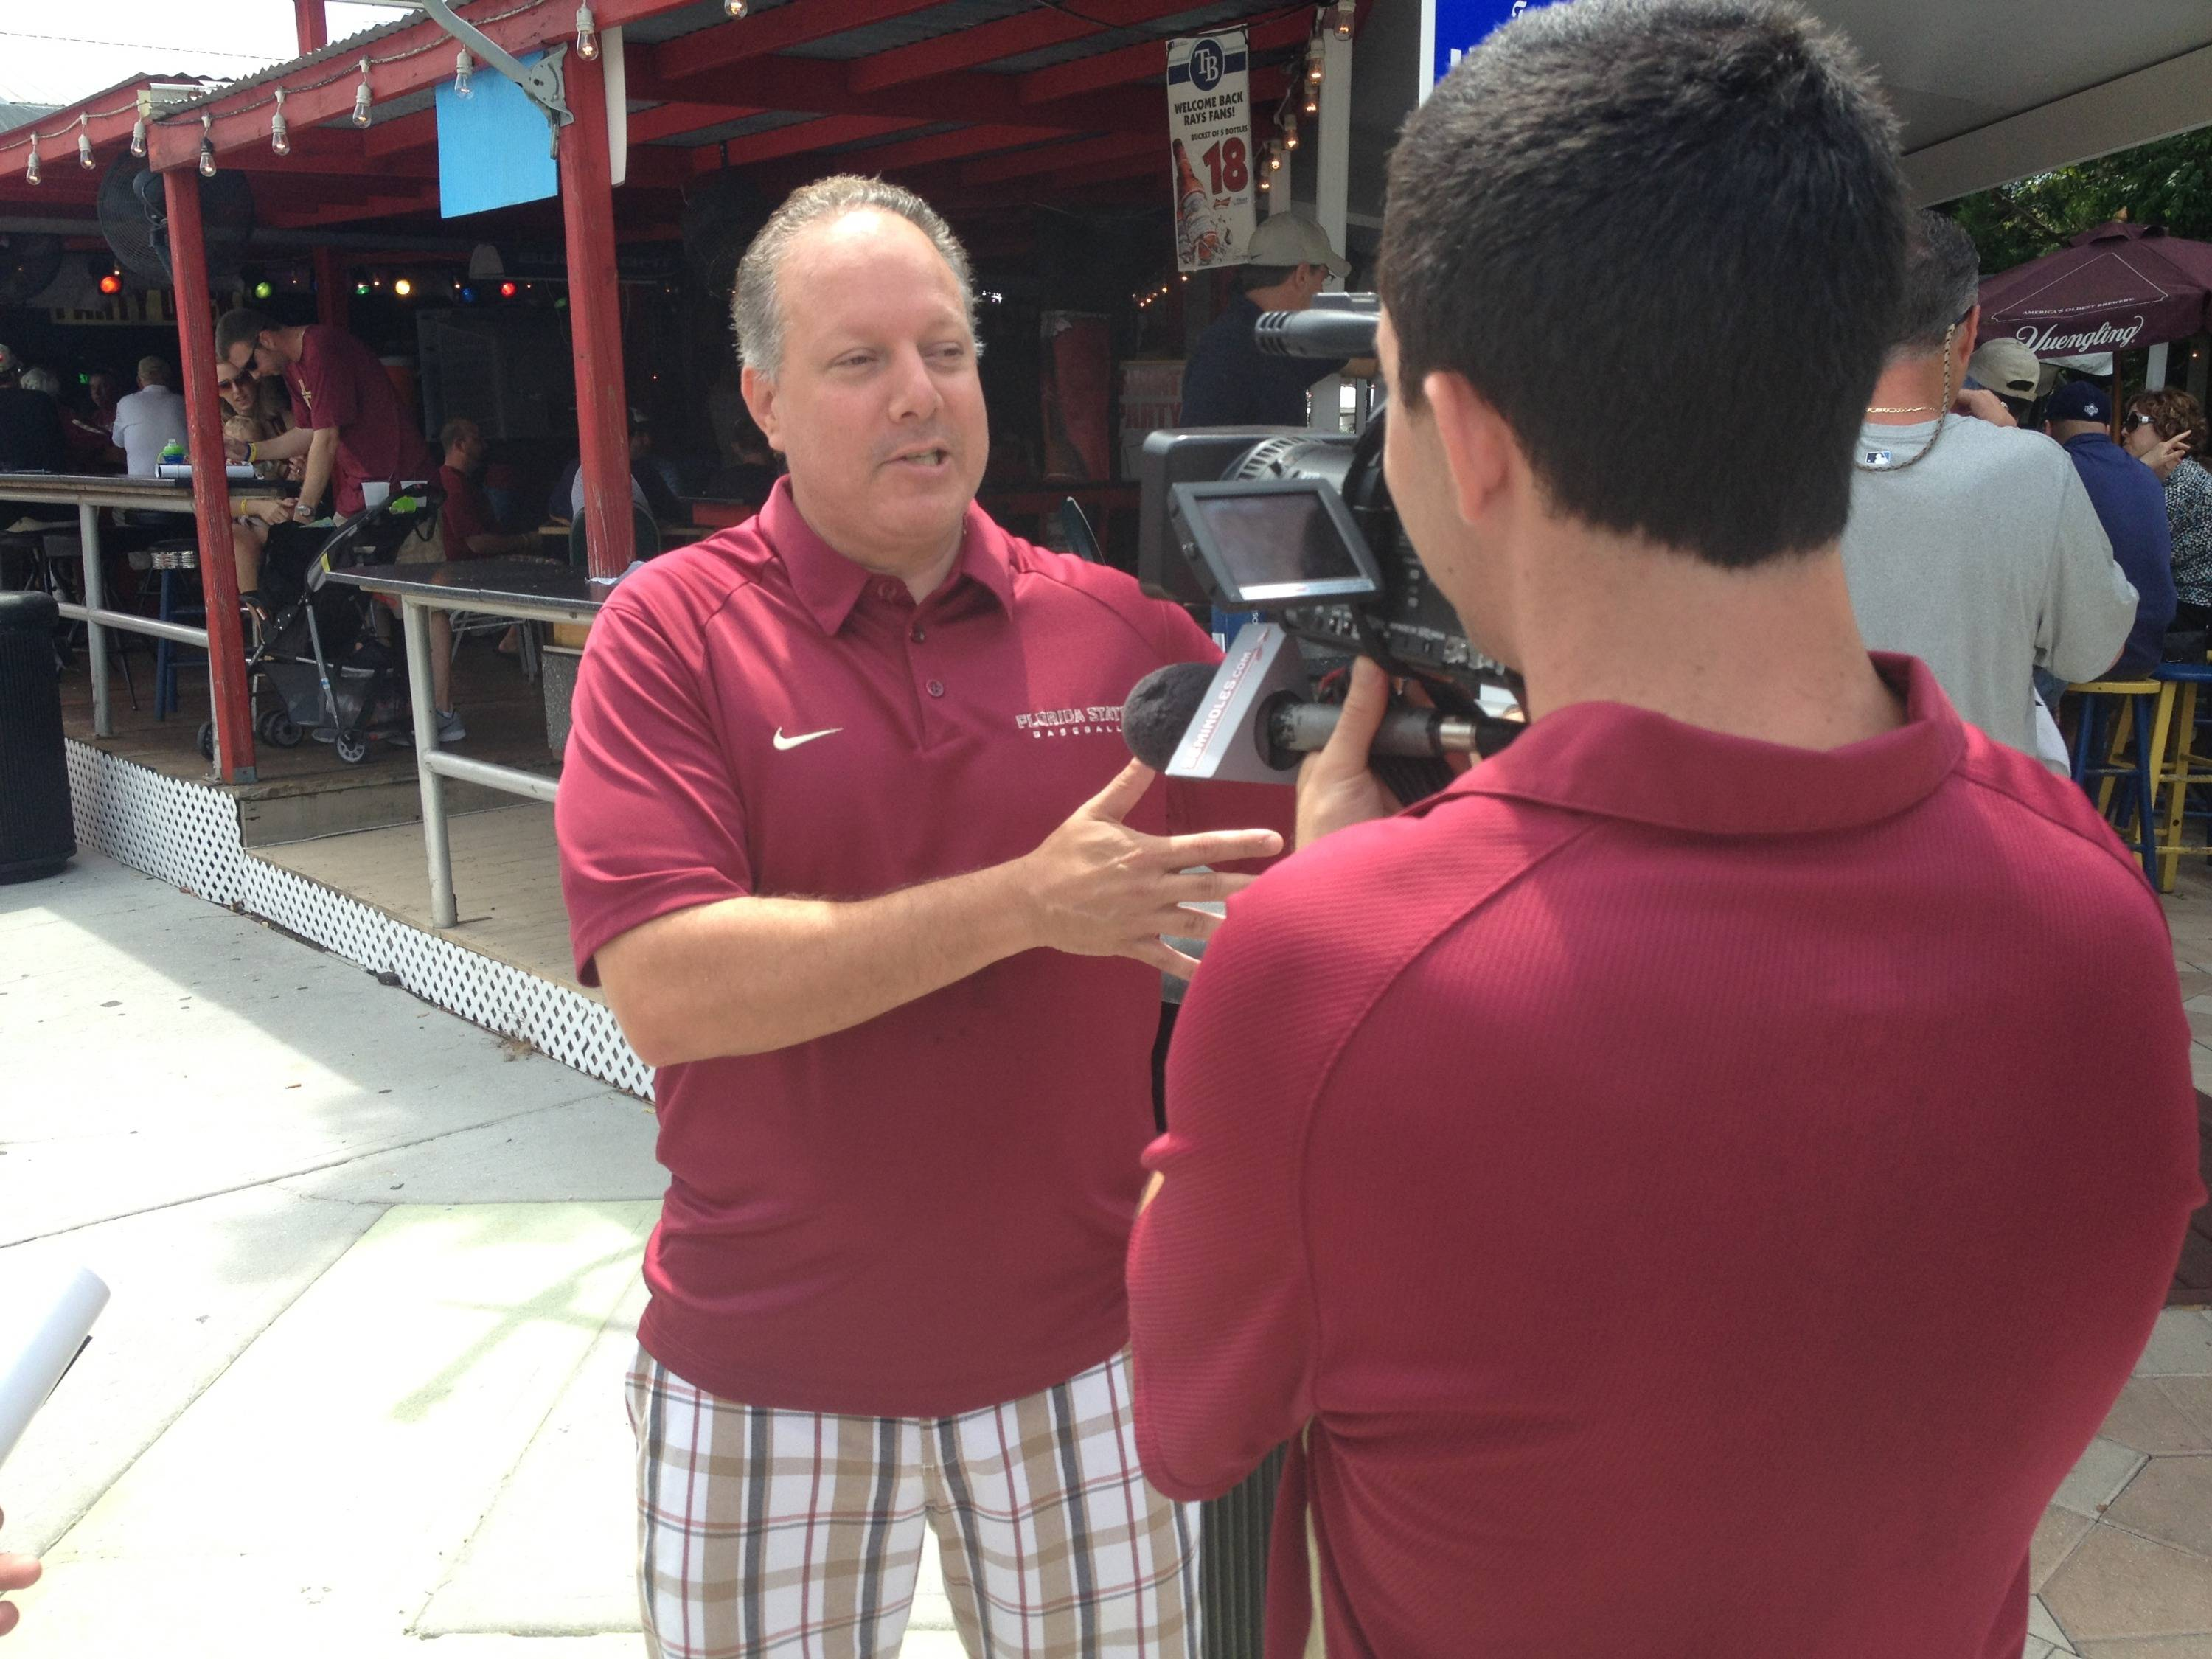 FSU Baseball radio play-by-play announcer speaks with Seminoles.com